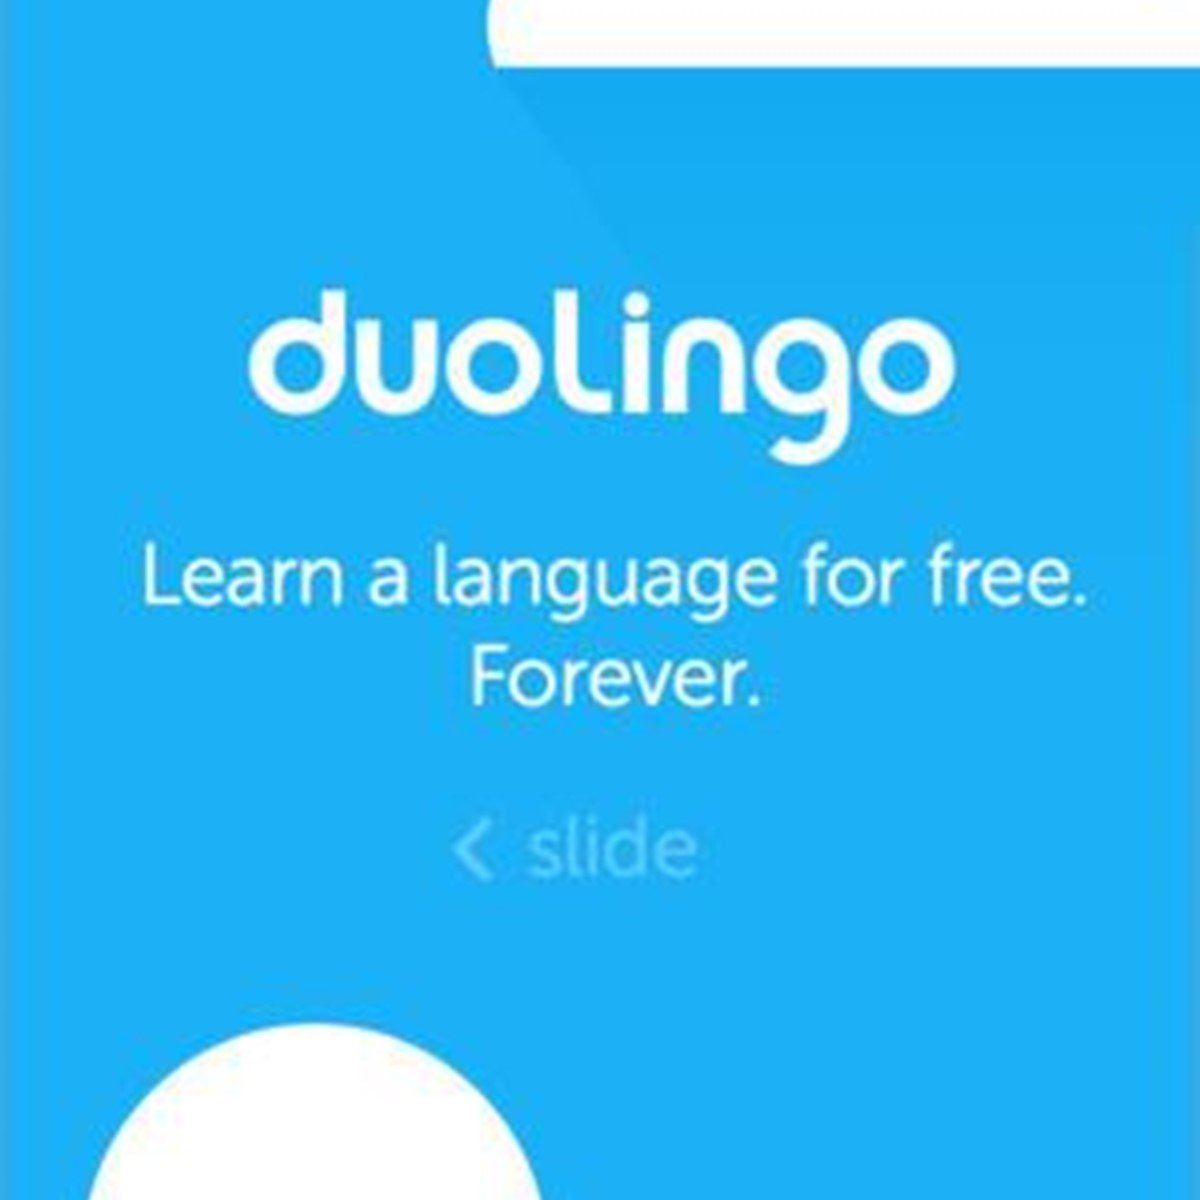 How effective is Duolingo in learning a language? - Quora